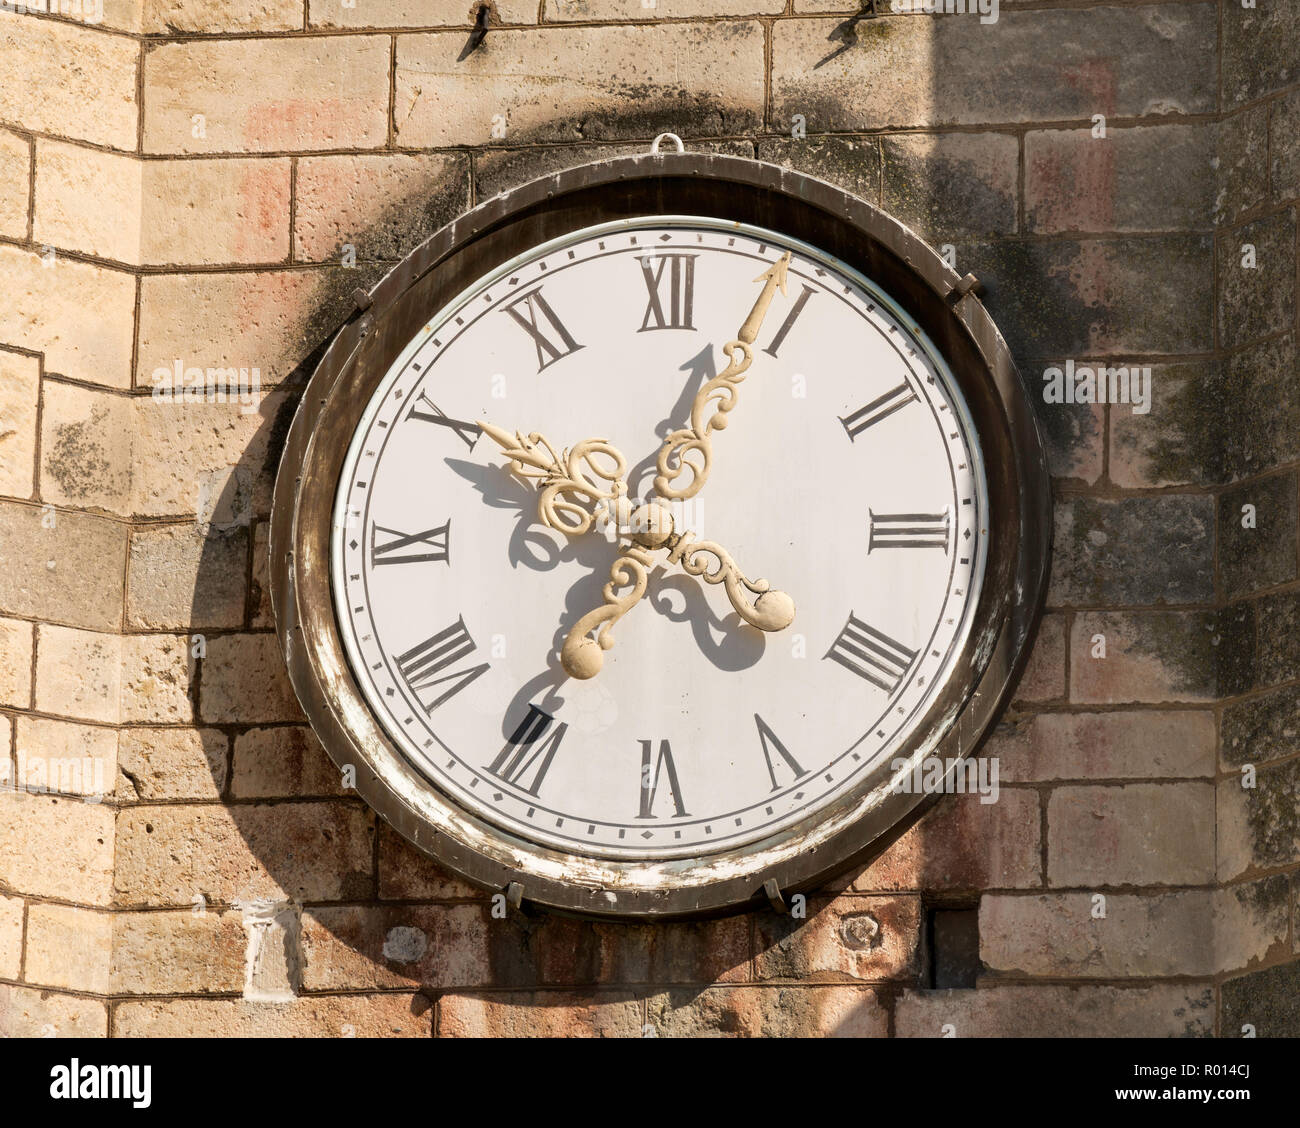 Clock face in the tower of the church of St Christopher, Coulanges-la-Vineuse, Yonne, France, Europe - Stock Image